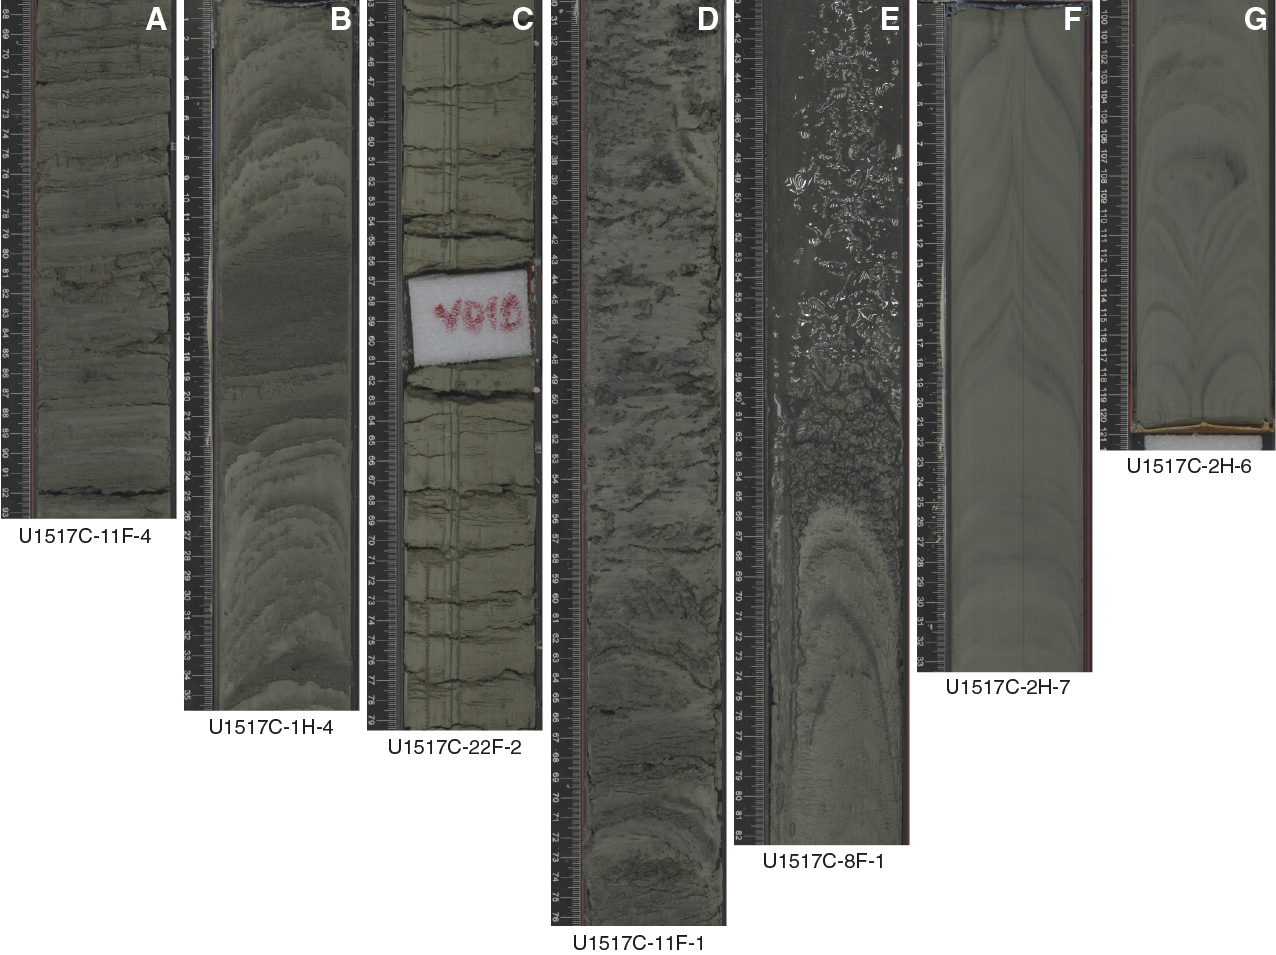 IODP Publications • Volume 372A expedition reports • Site U1517